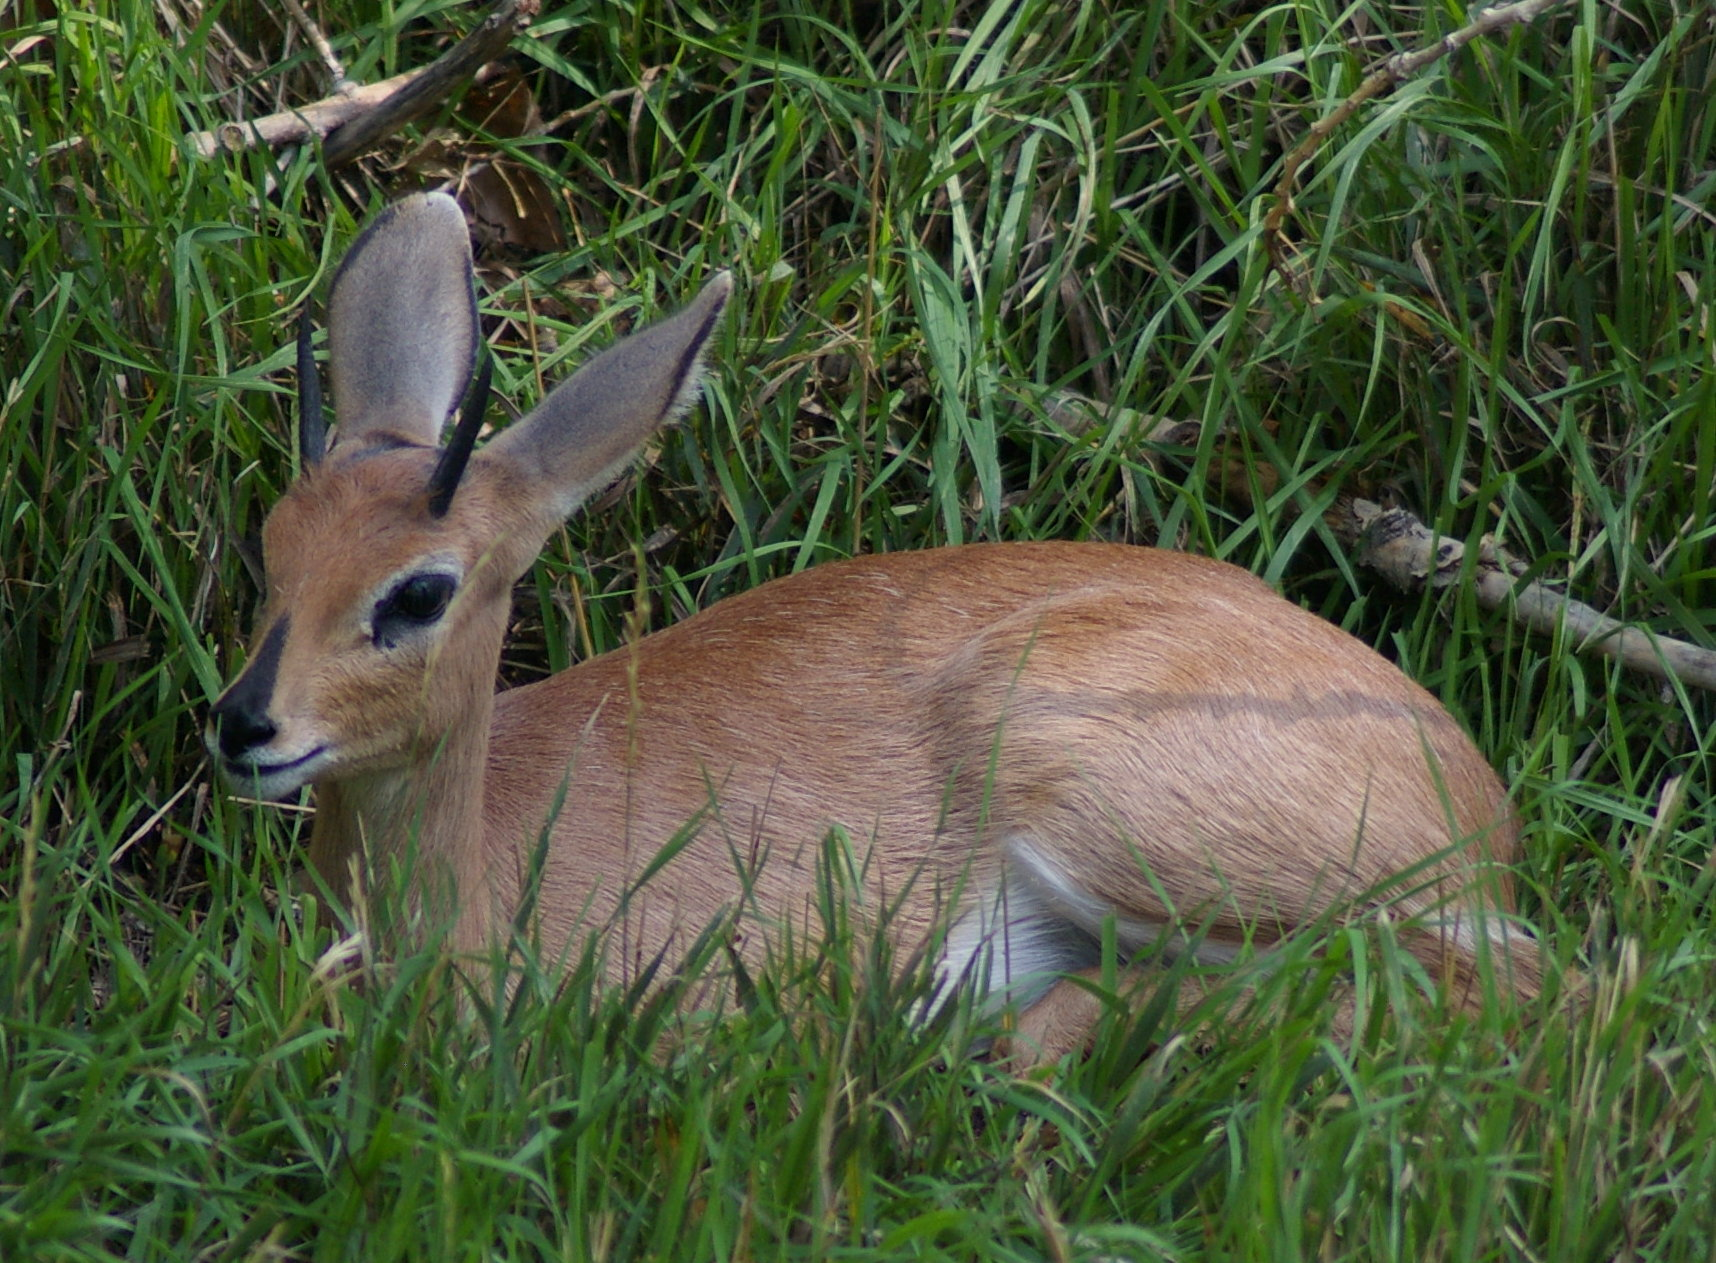 https://i0.wp.com/upload.wikimedia.org/wikipedia/commons/3/33/Steenbok_sitting.jpg